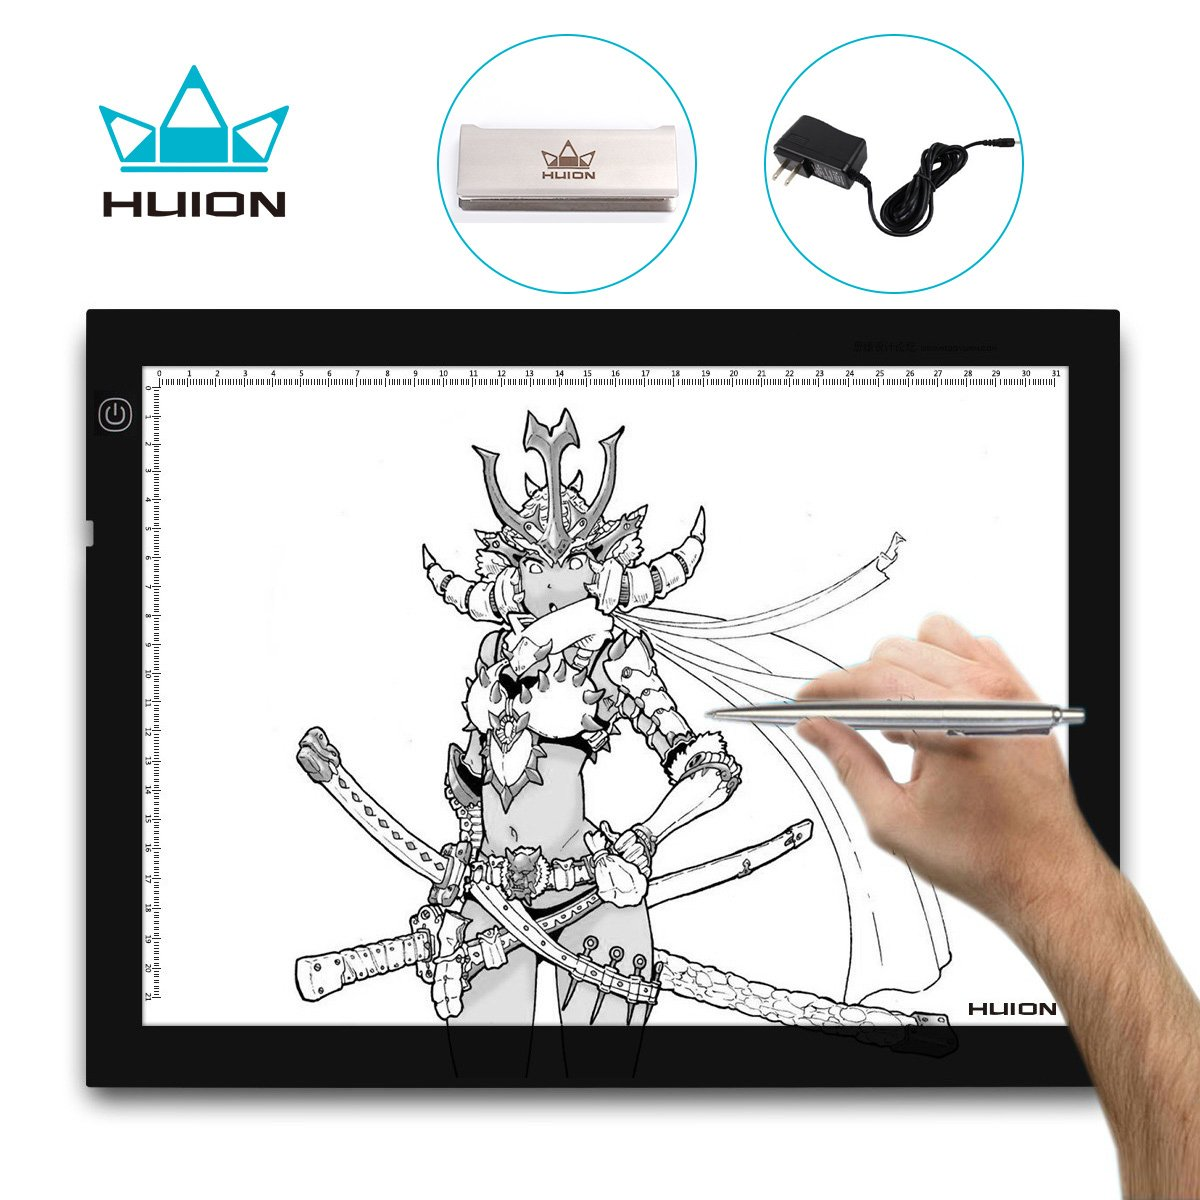 Huion A4 LED Light Pad Tracing Light Box Adjustable Brightness AC Powered - 14x10 Inch by Huion